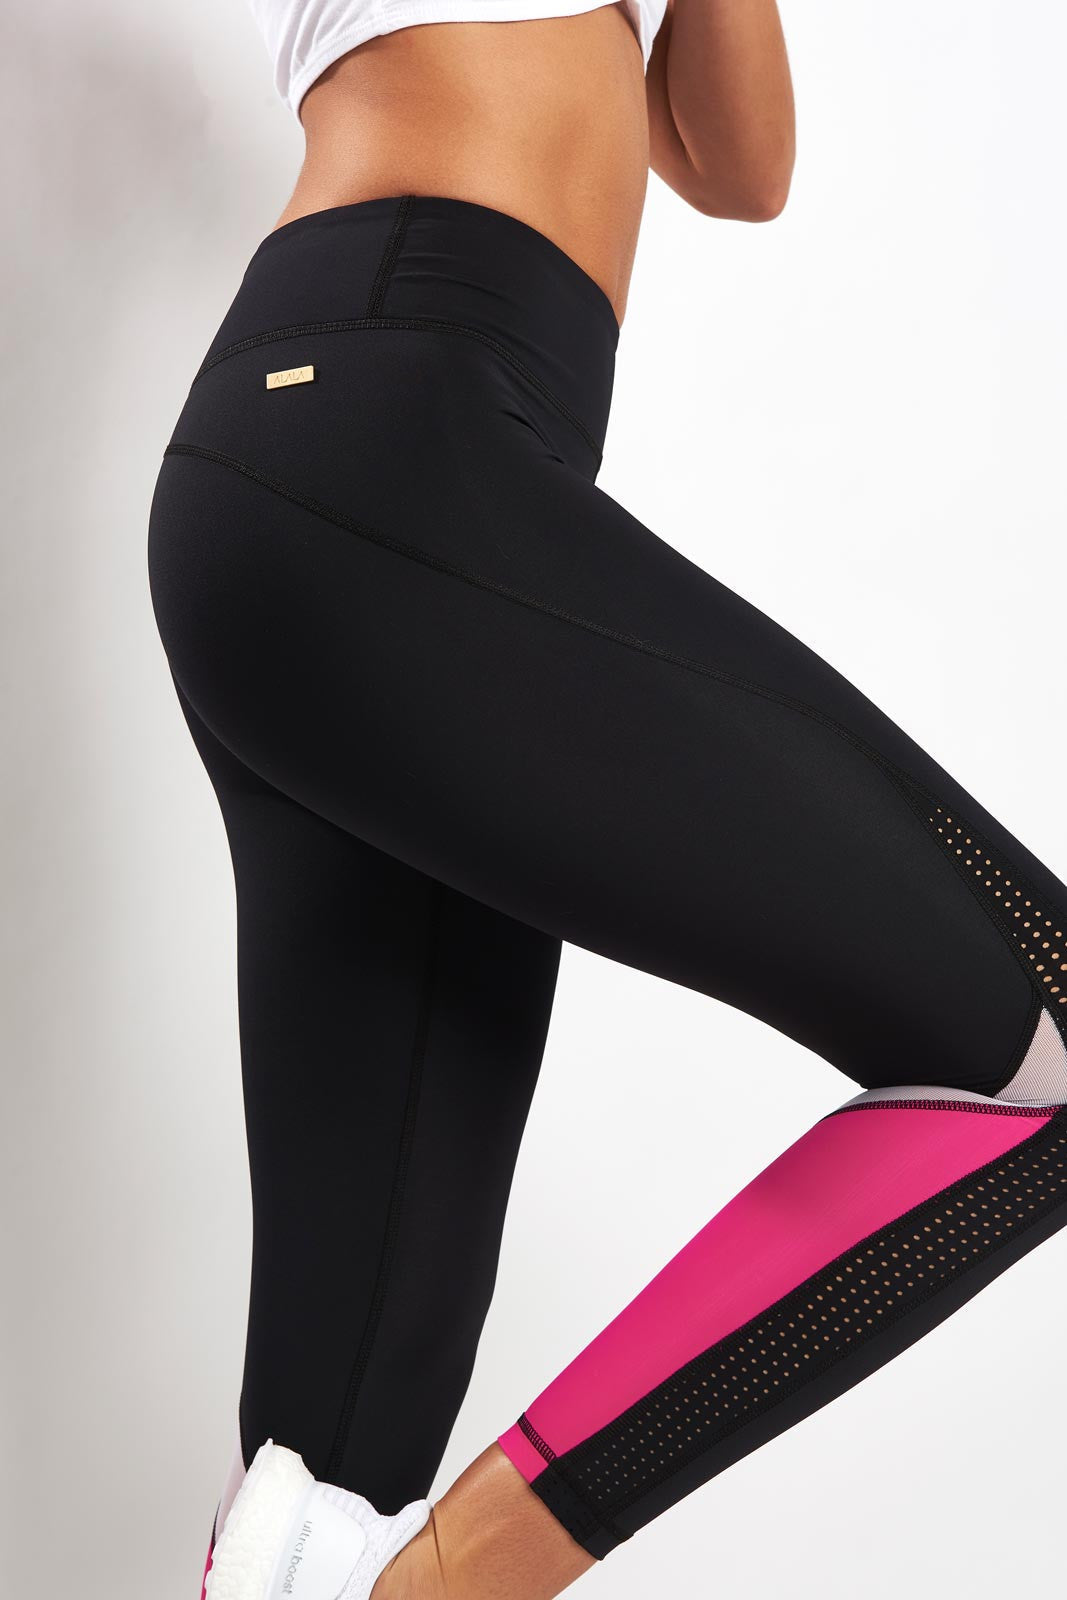 Alala Heroine Tight - Black/White/Hibiscus image 3 - The Sports Edit